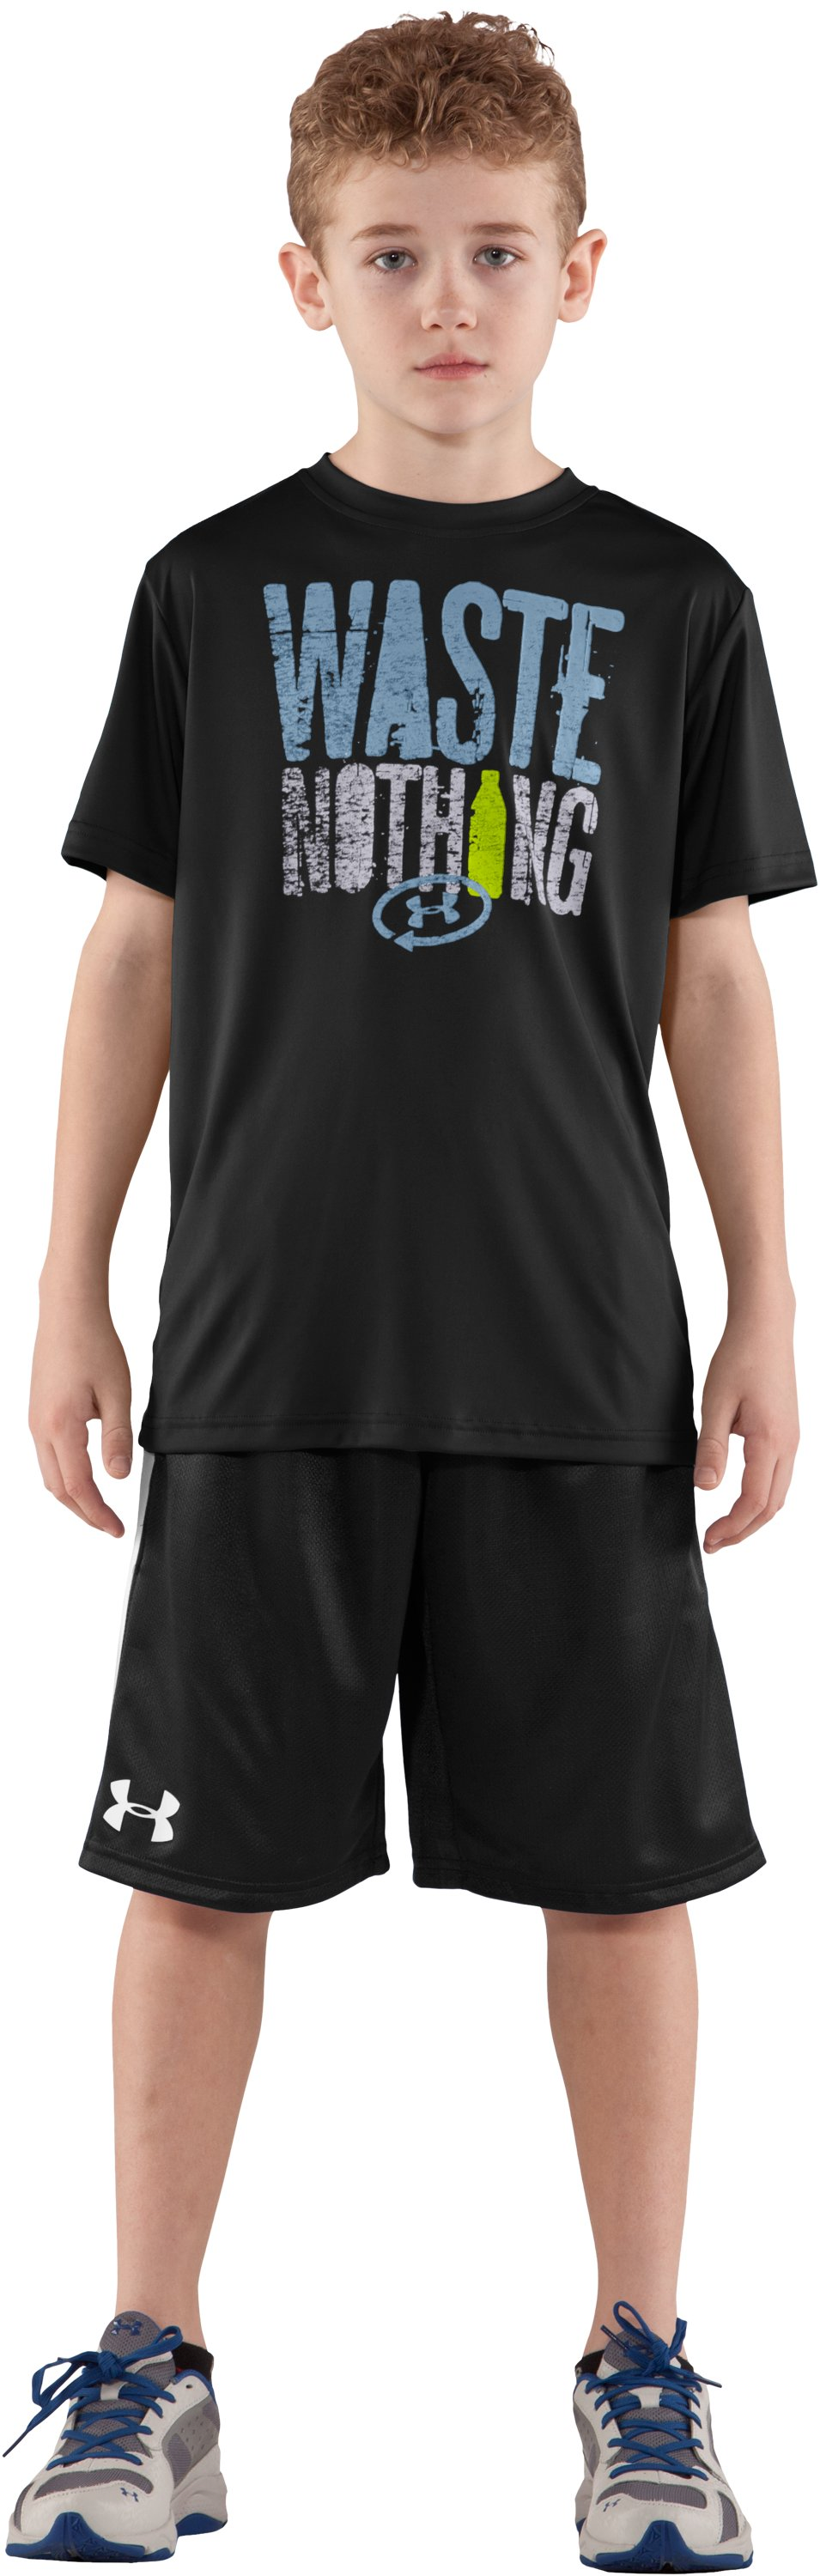 Boys' UA Catalyst Waste Nothing T-Shirt, Black , Front